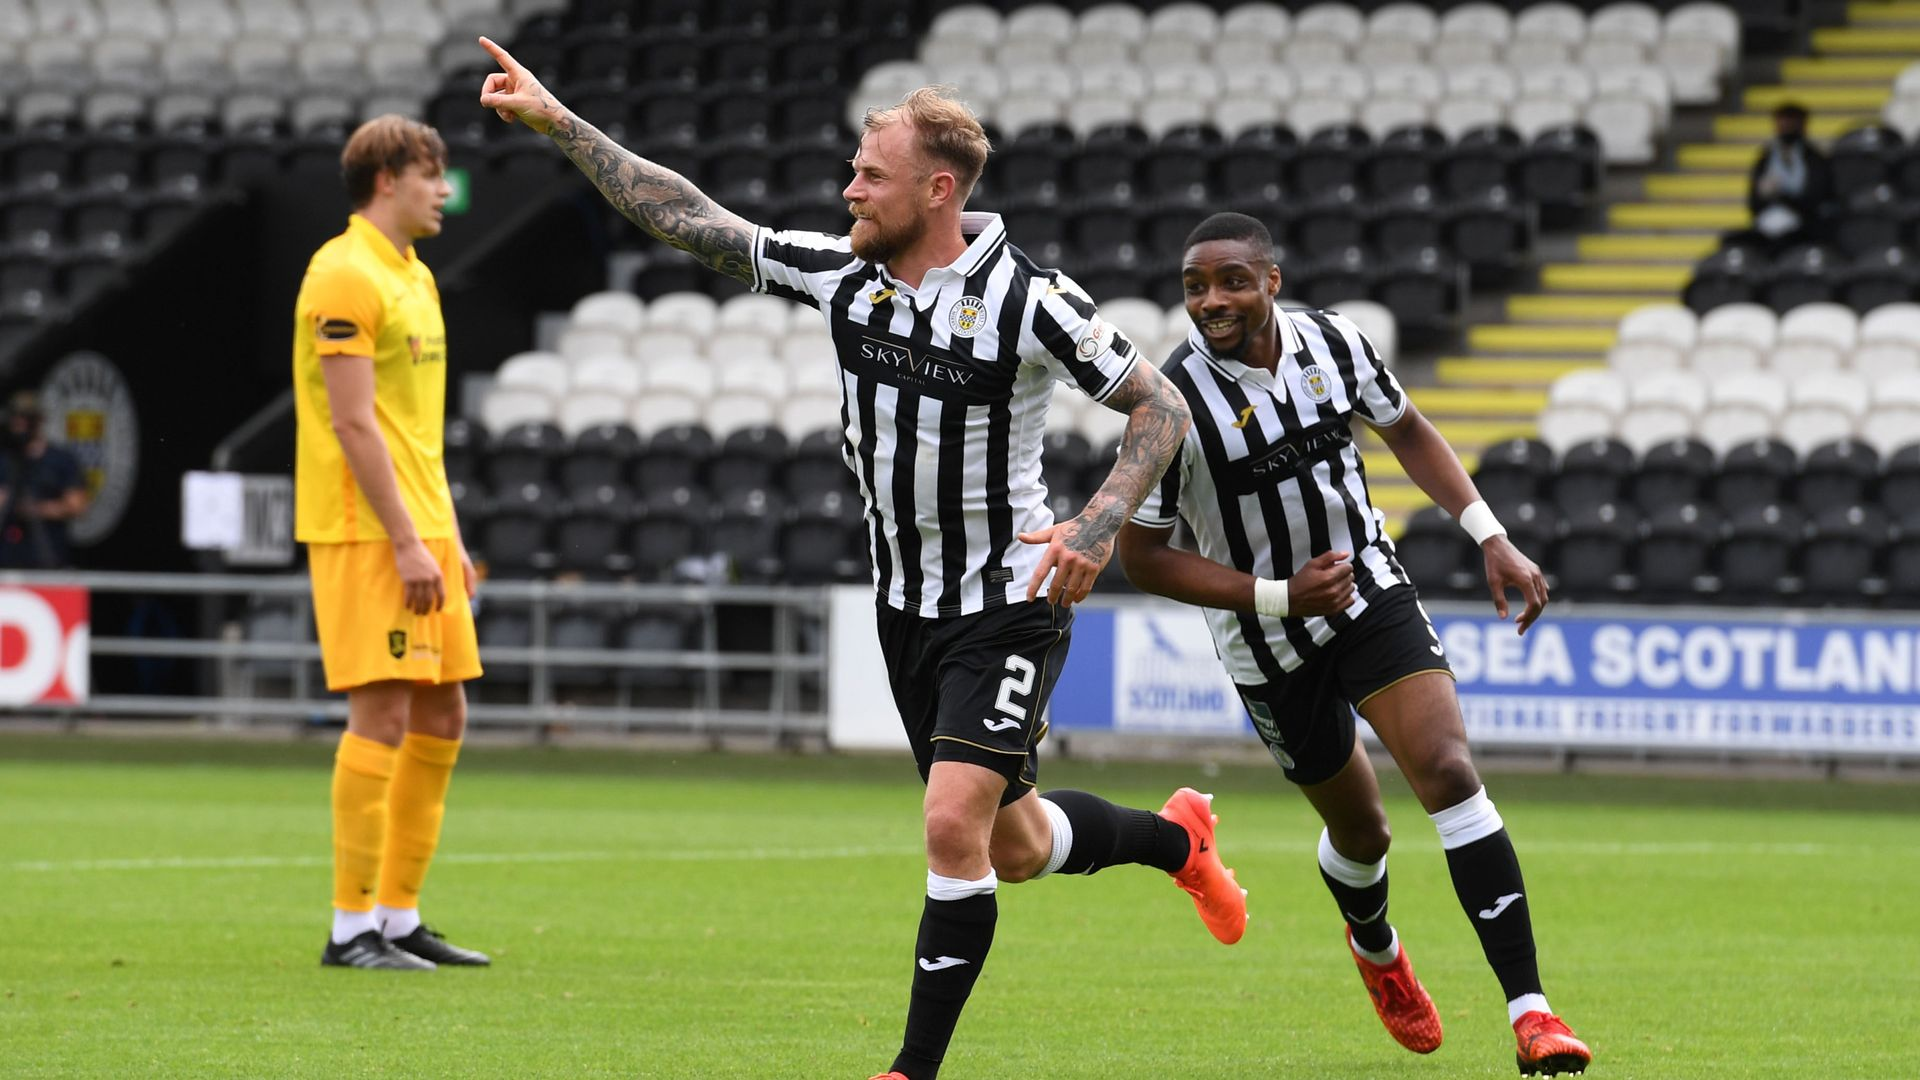 Tait's debut goal sees St Mirren past Livingston